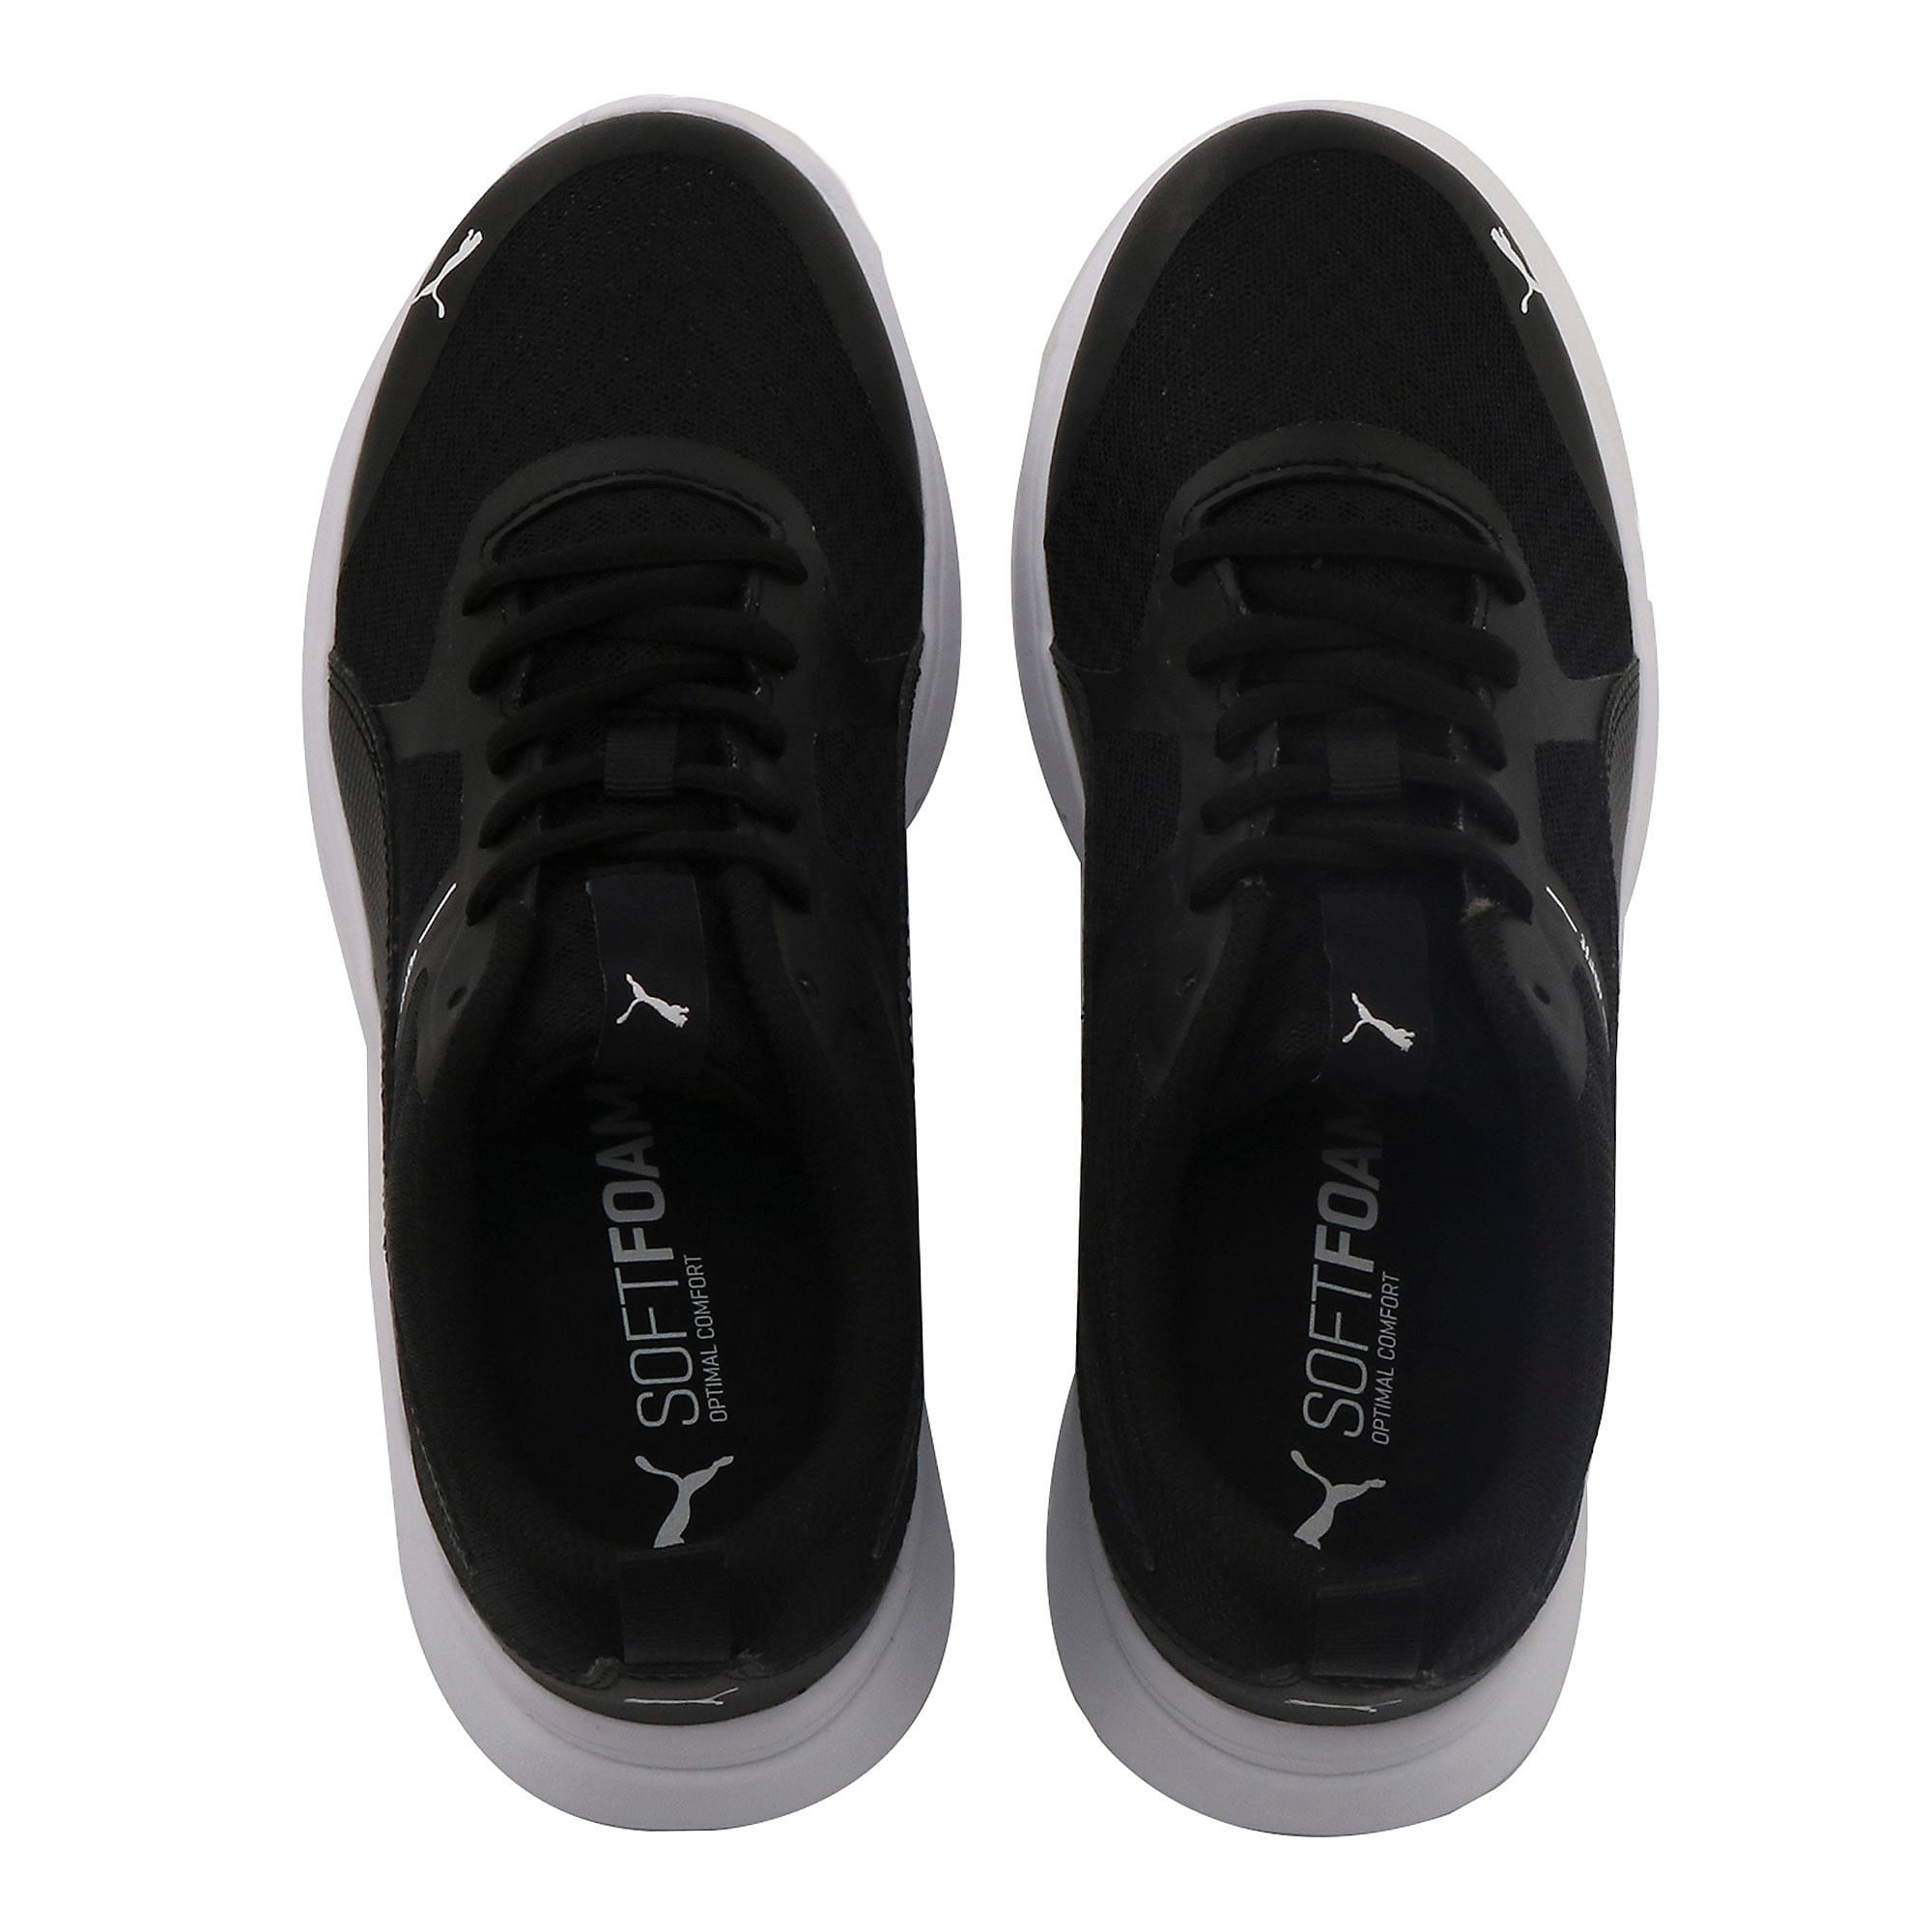 Thumbnail 6 of Essential Flex Youth Trainers, Puma Black-Puma Black, medium-IND